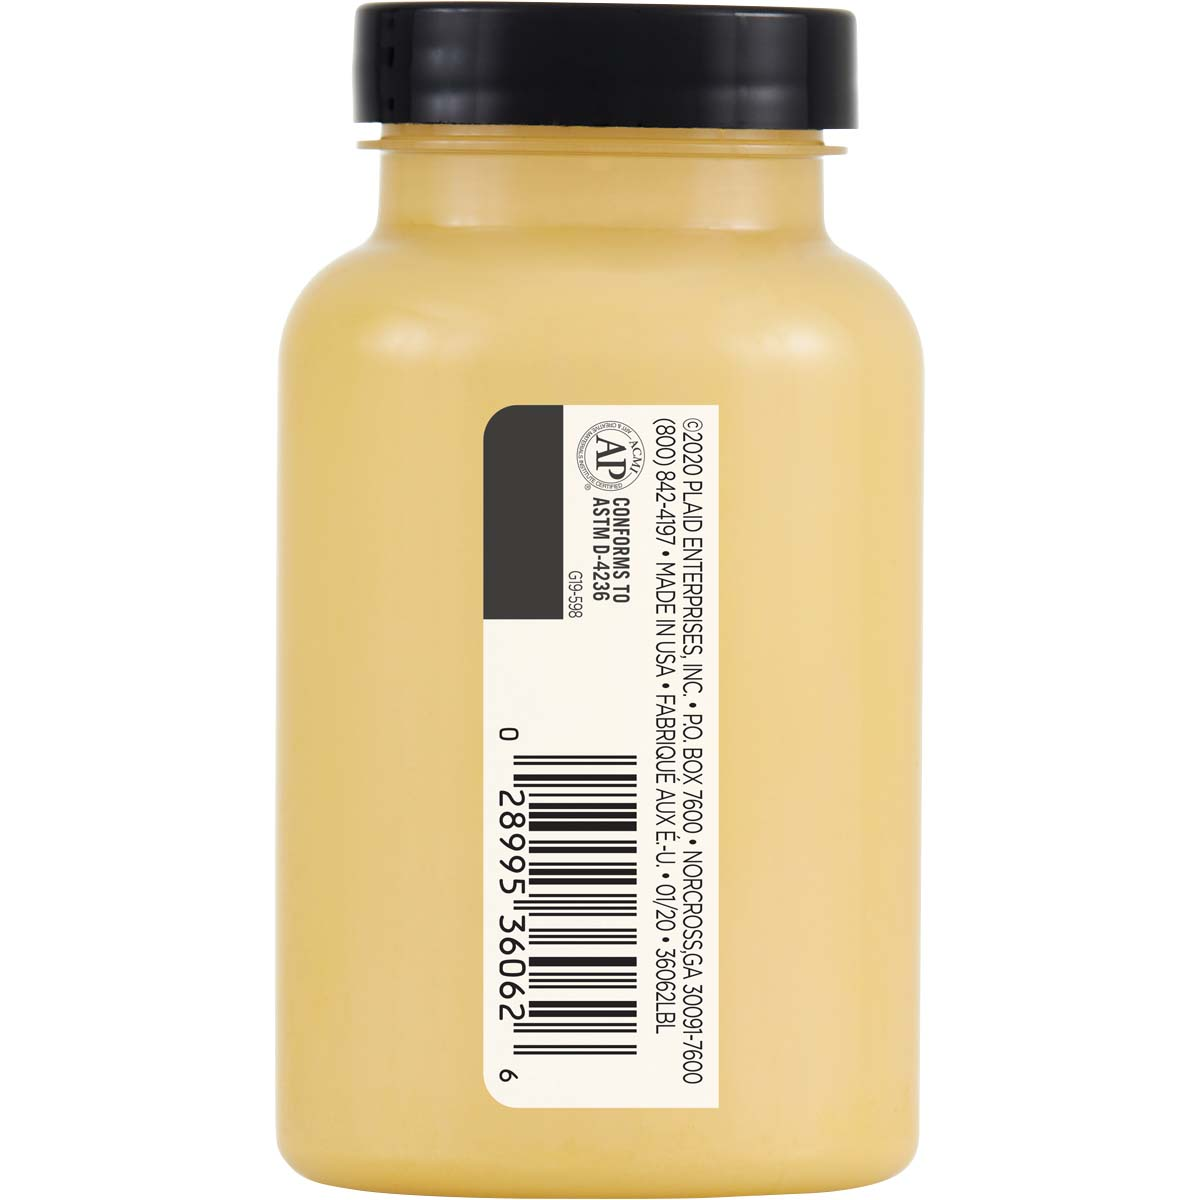 FolkArt ® One Décor Paint™ - Beeswax, 8 oz. - 36062